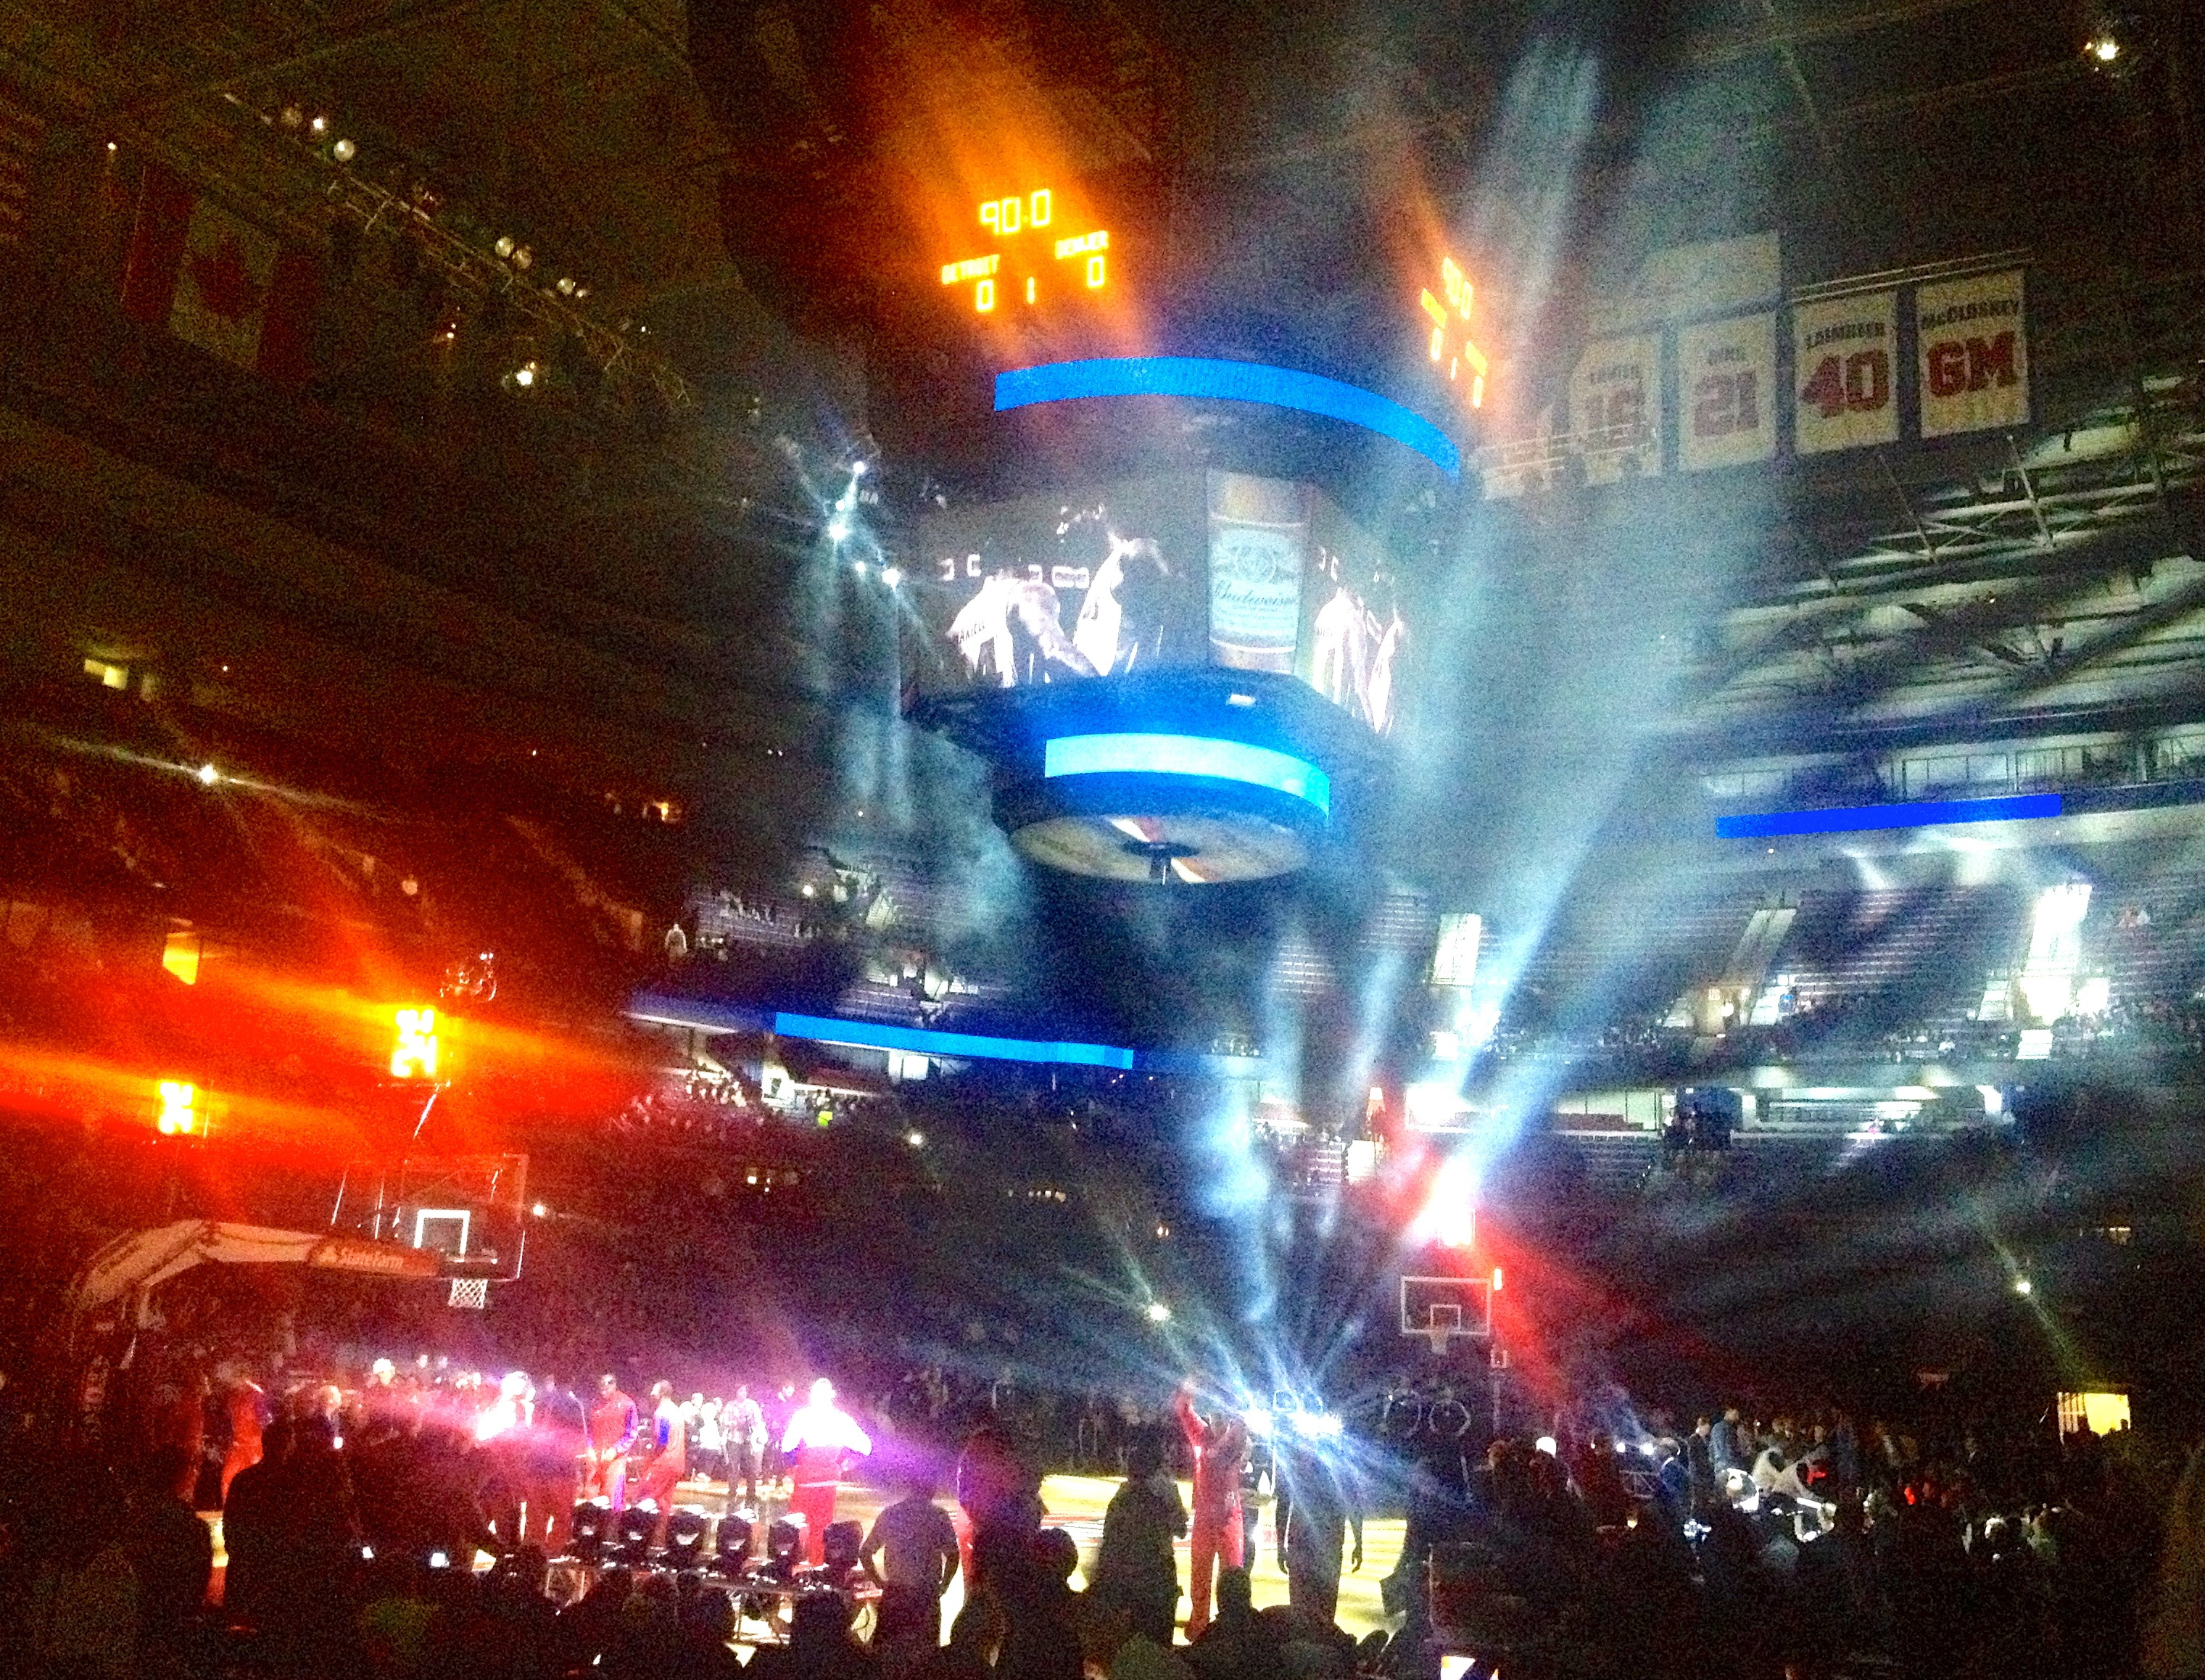 detroit pistons home game